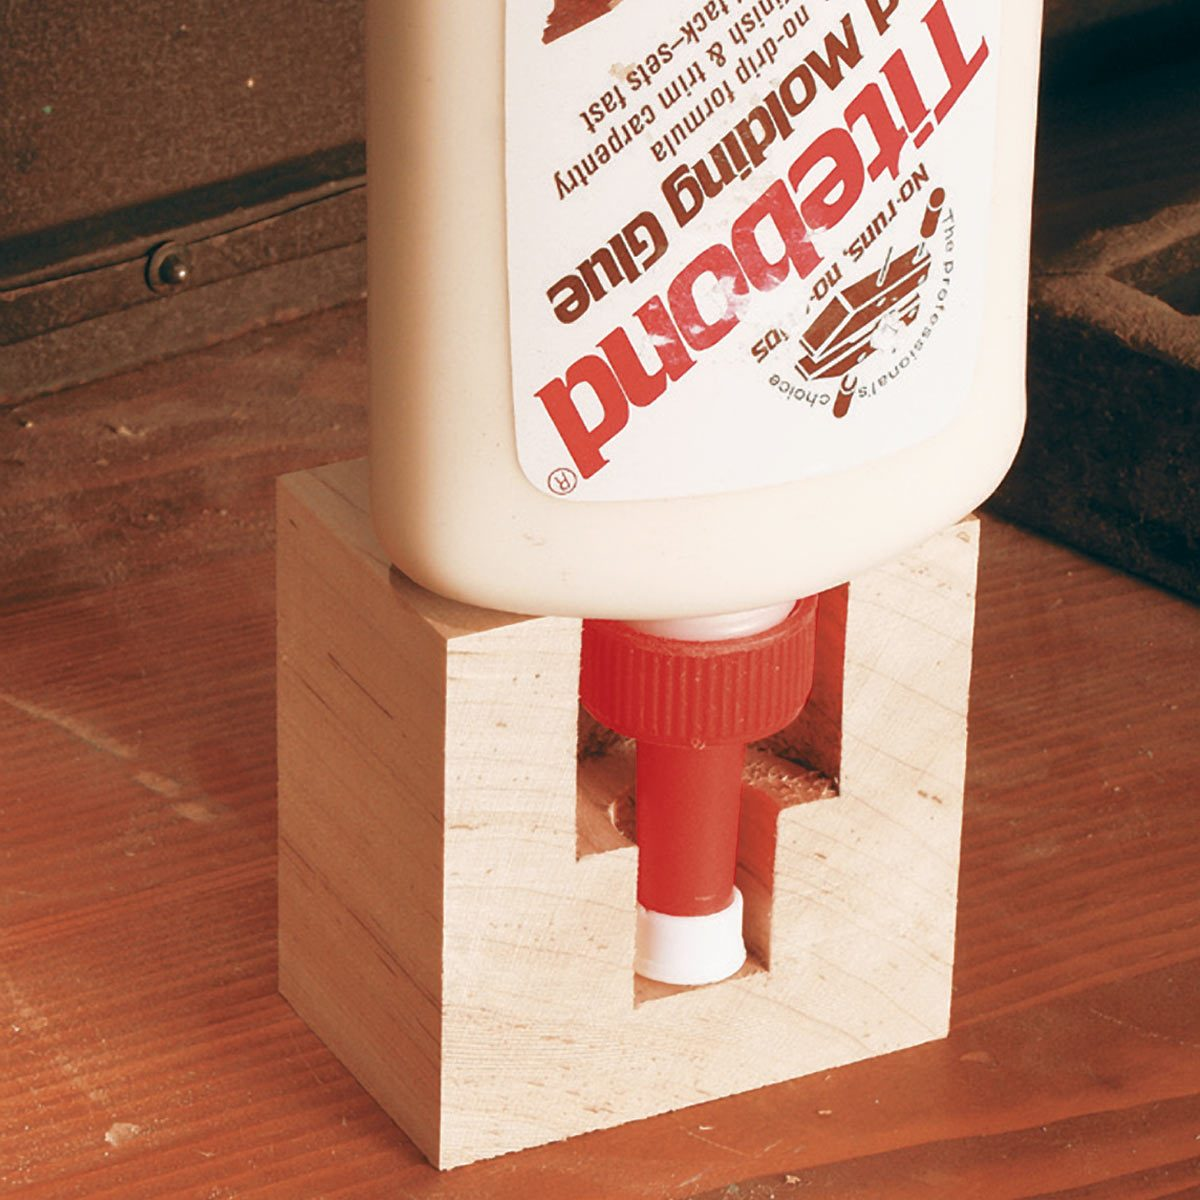 upside down glue bottle brace